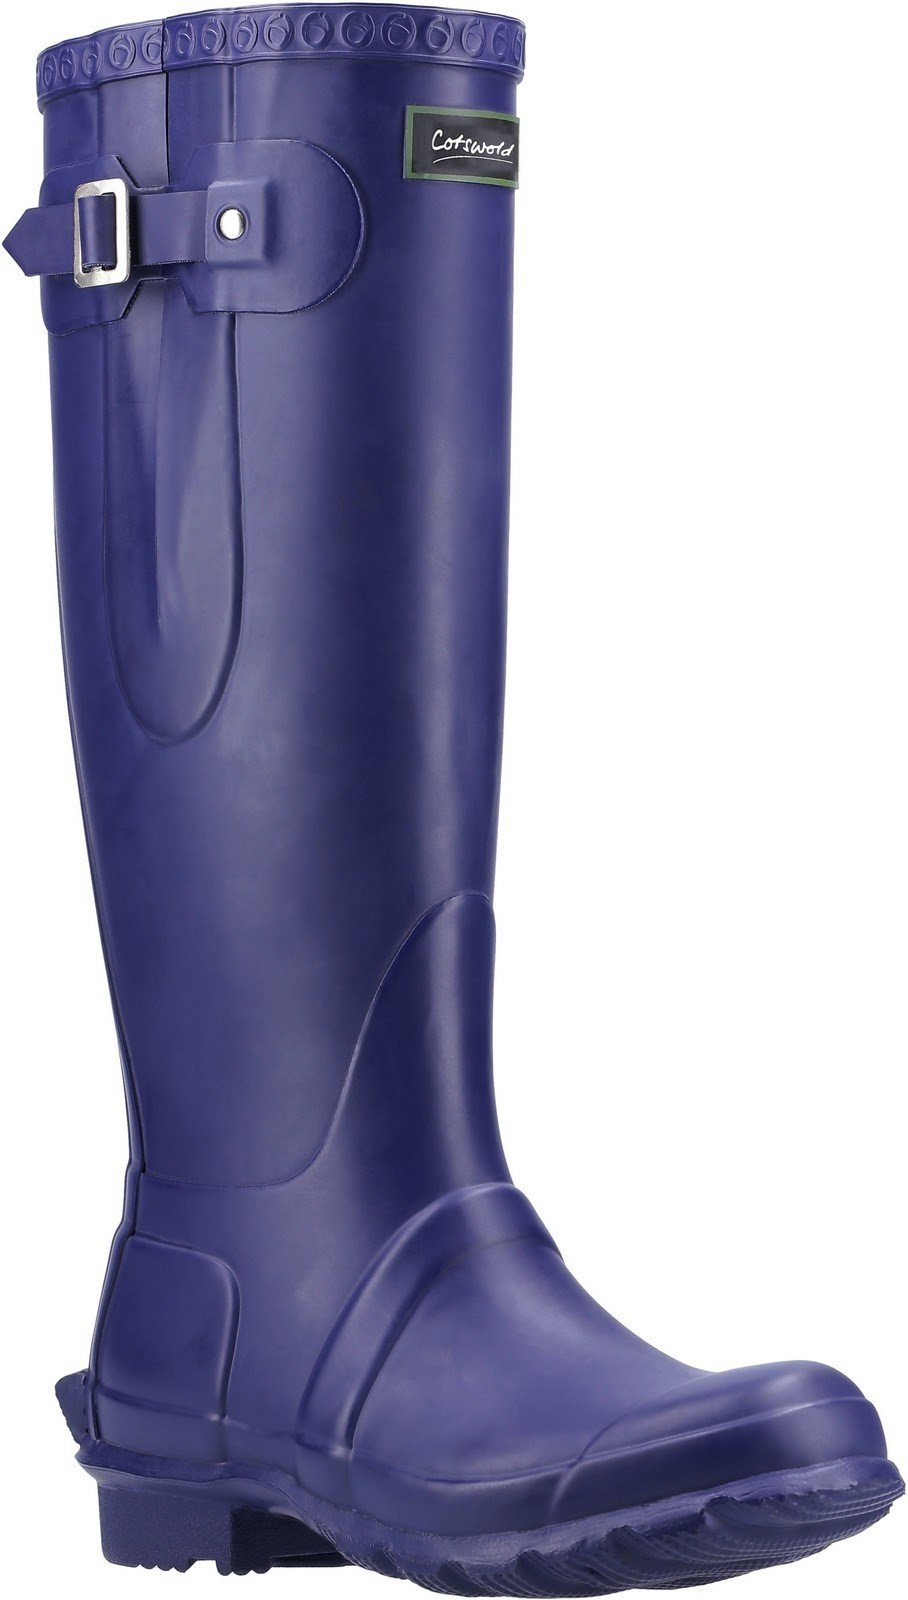 Cotswold Unisex Windsor Tall Wellington Boot Various Colours 20958 - Aubergine 3